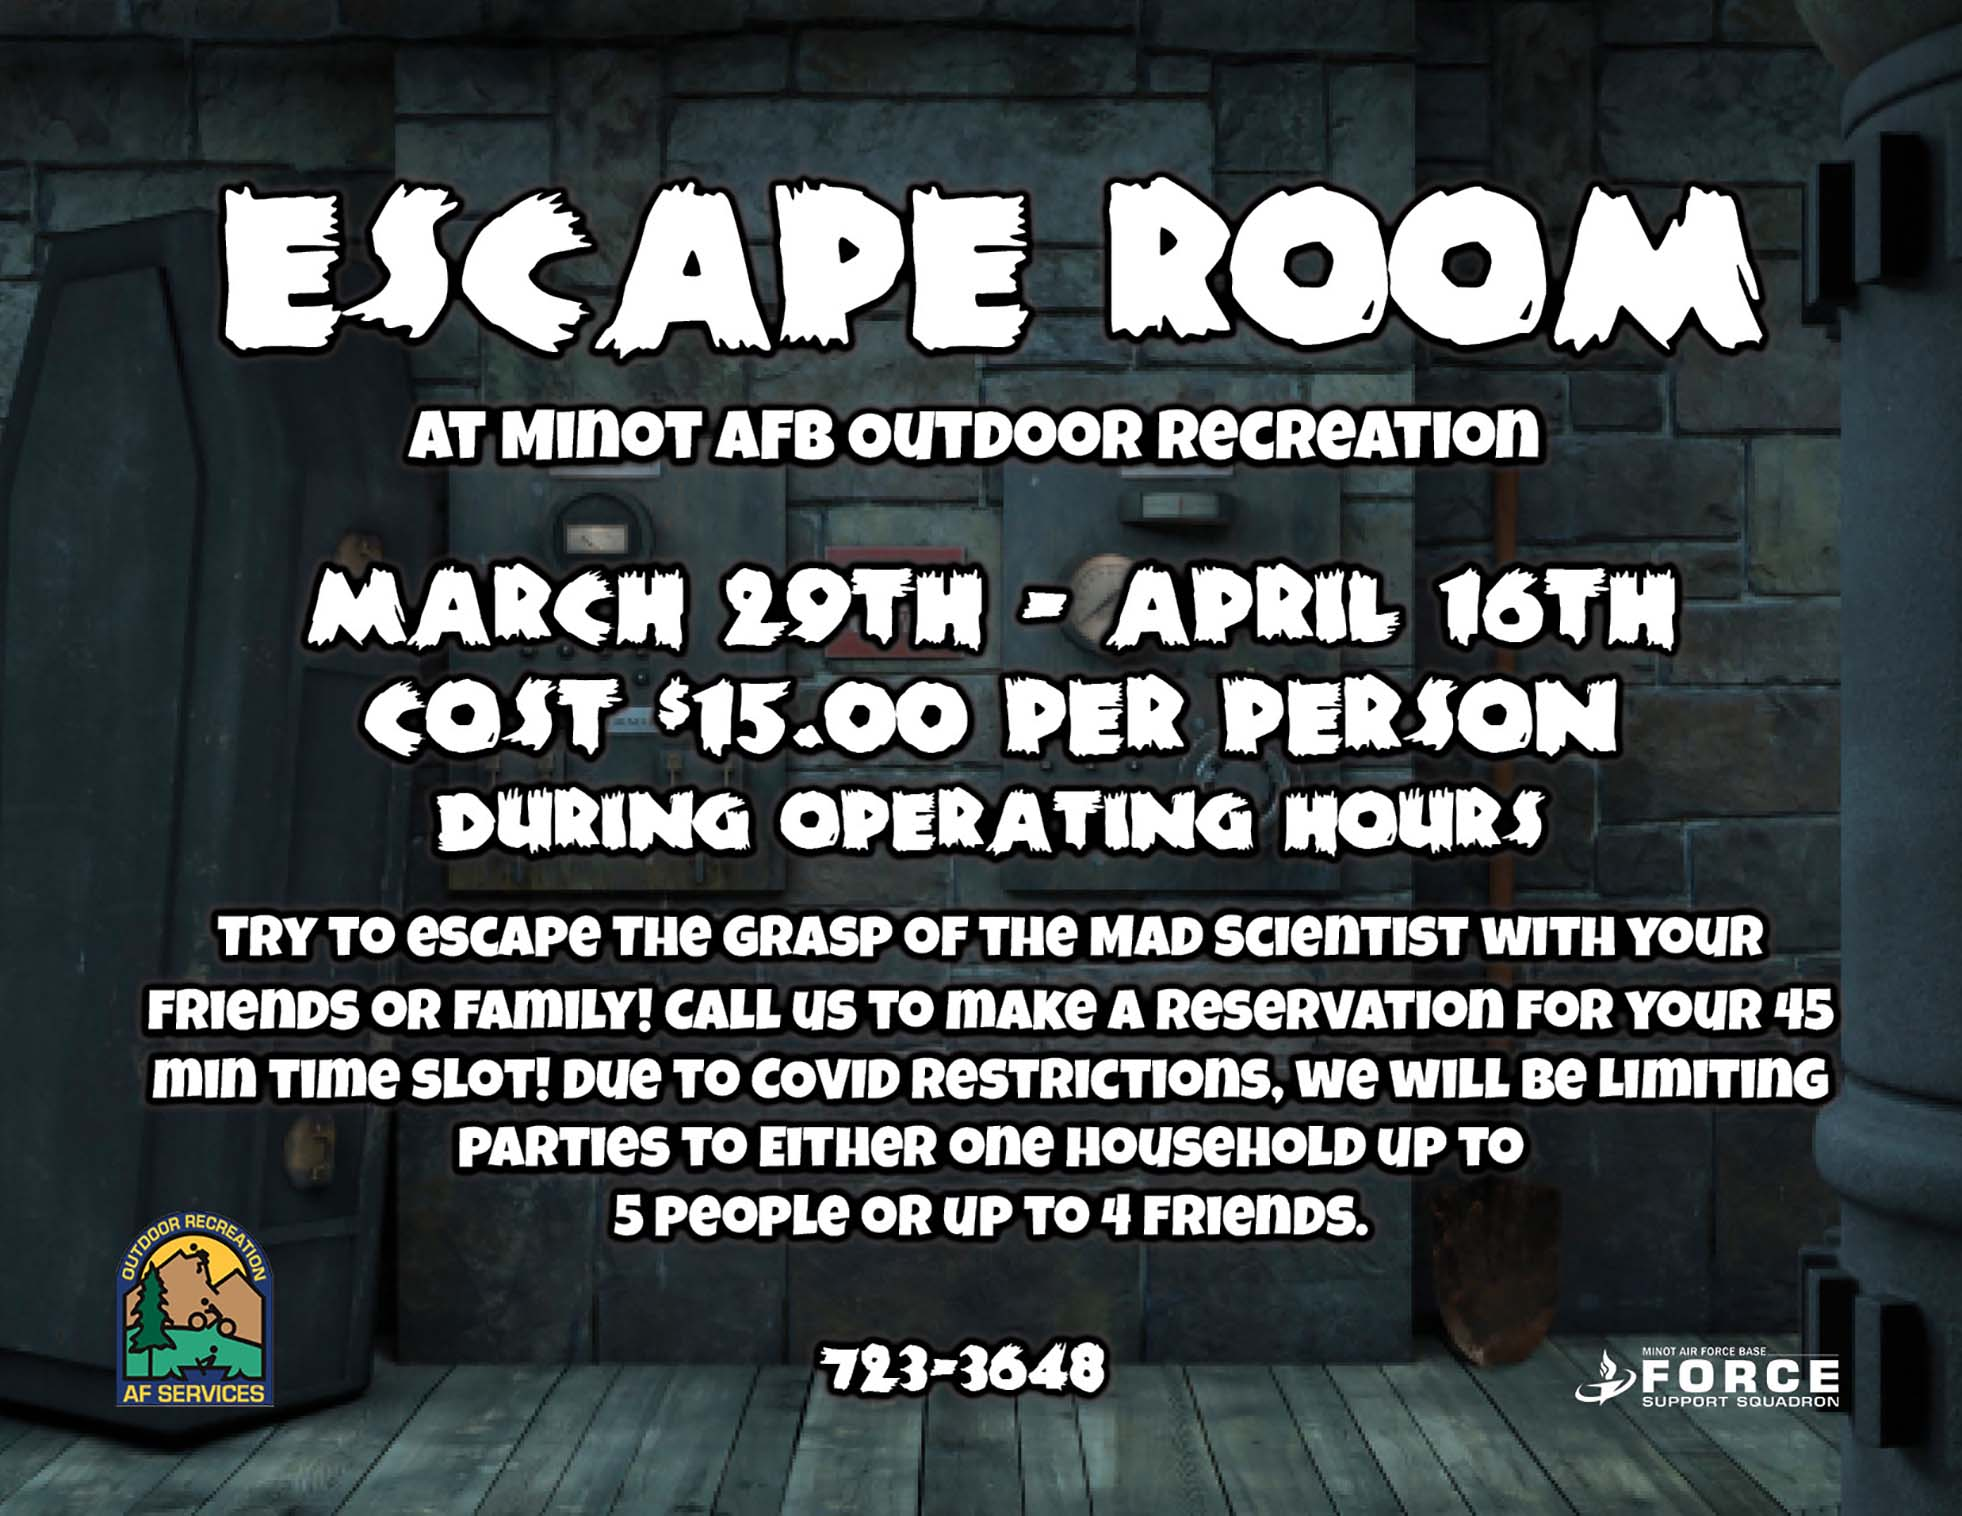 Escape Room at ODR